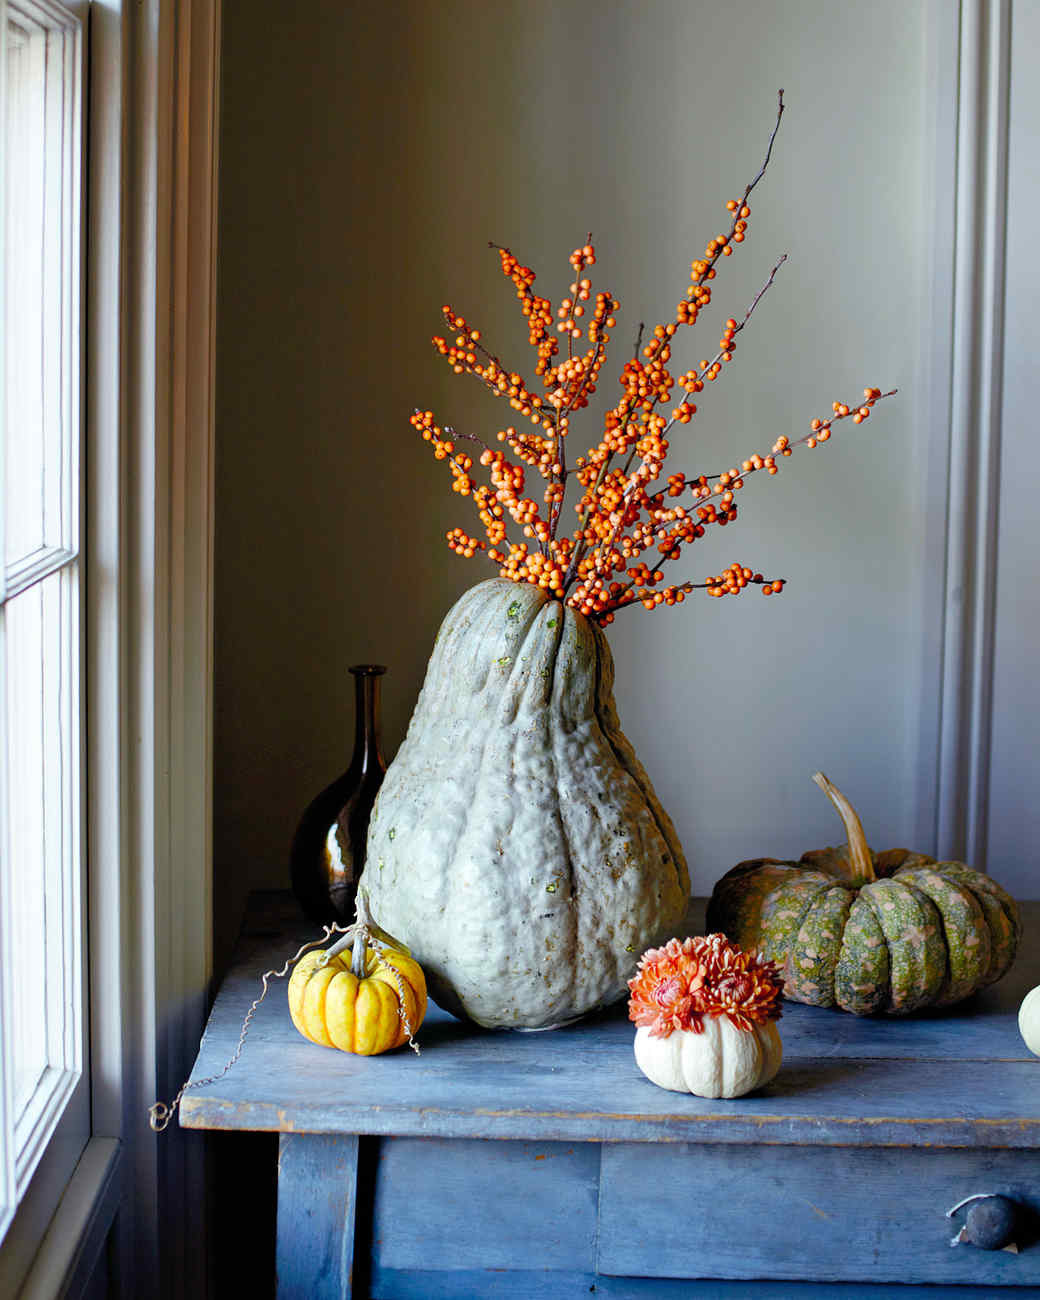 pumpkins as vases for centerpieces of 40 thanksgiving table settings to wow your guests intended for good things squash vase mld106852 vert